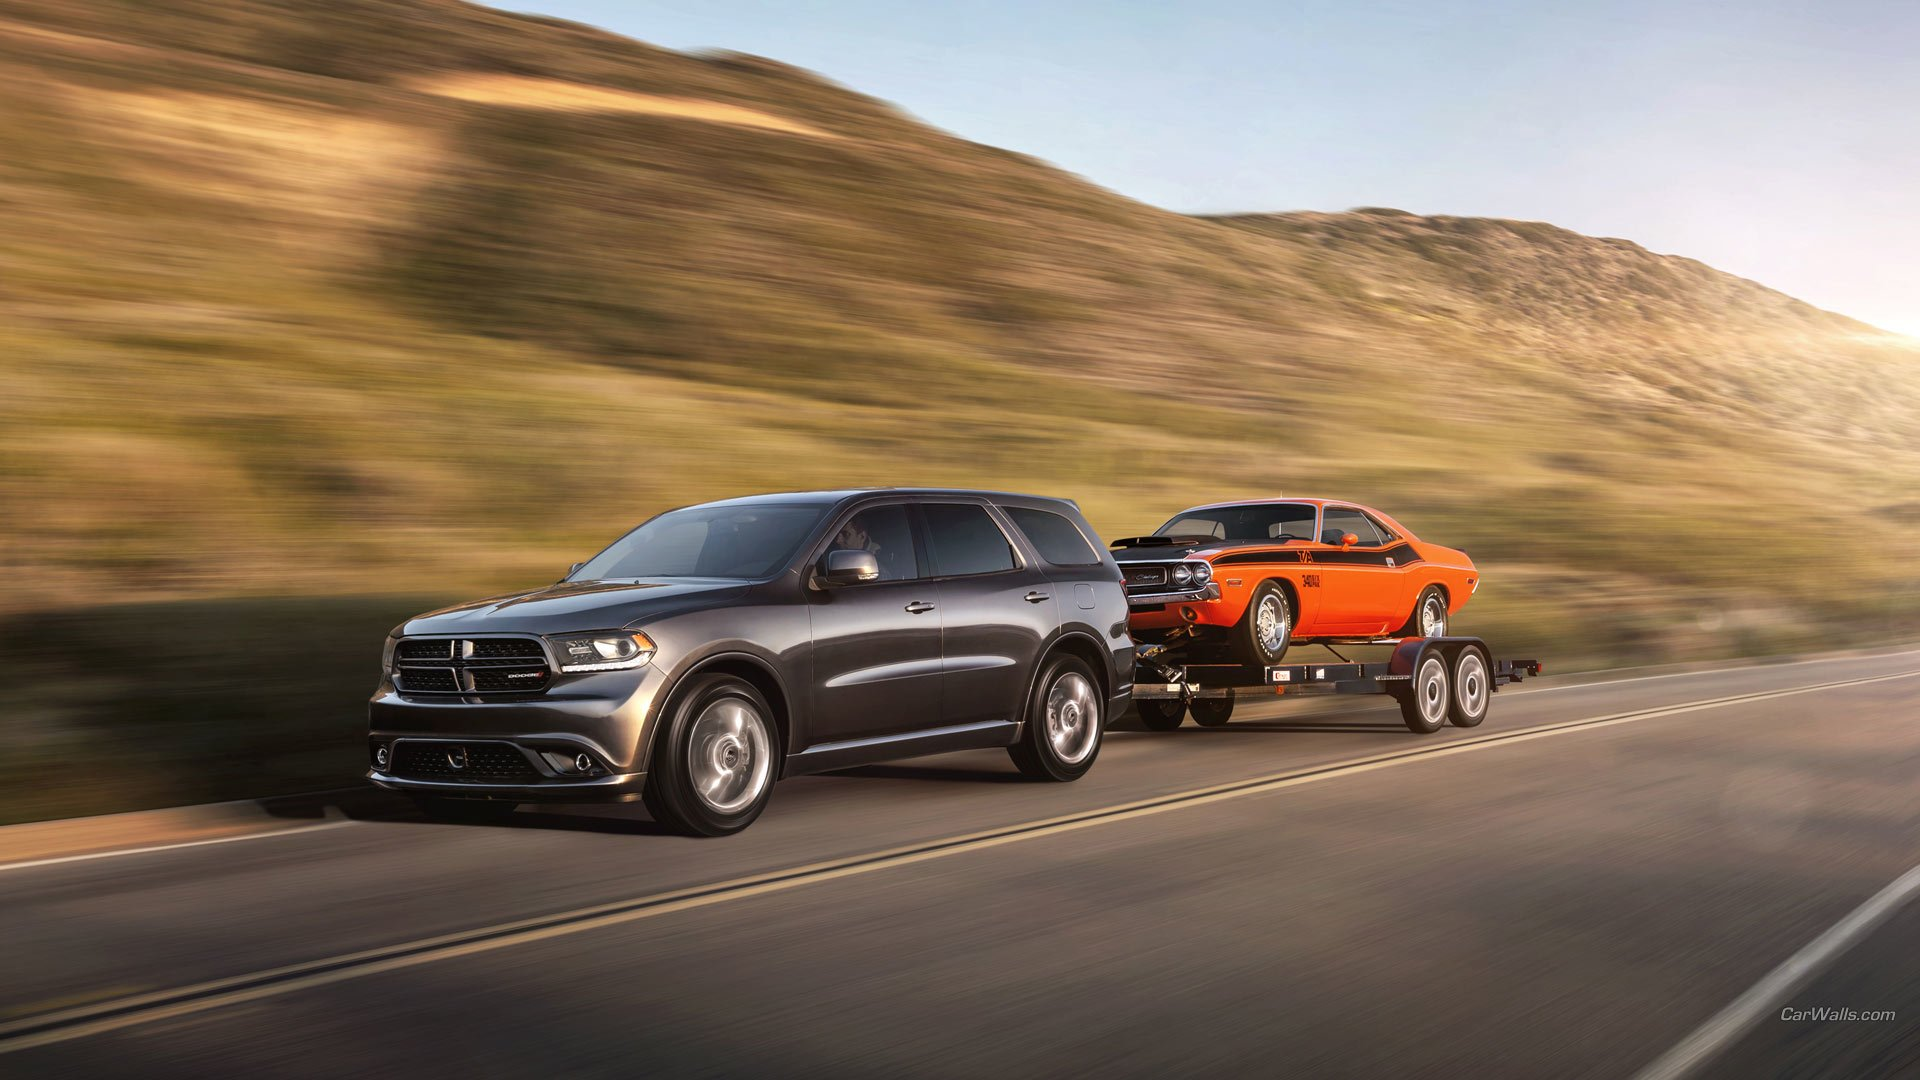 dodge durango wallpaper - photo #19